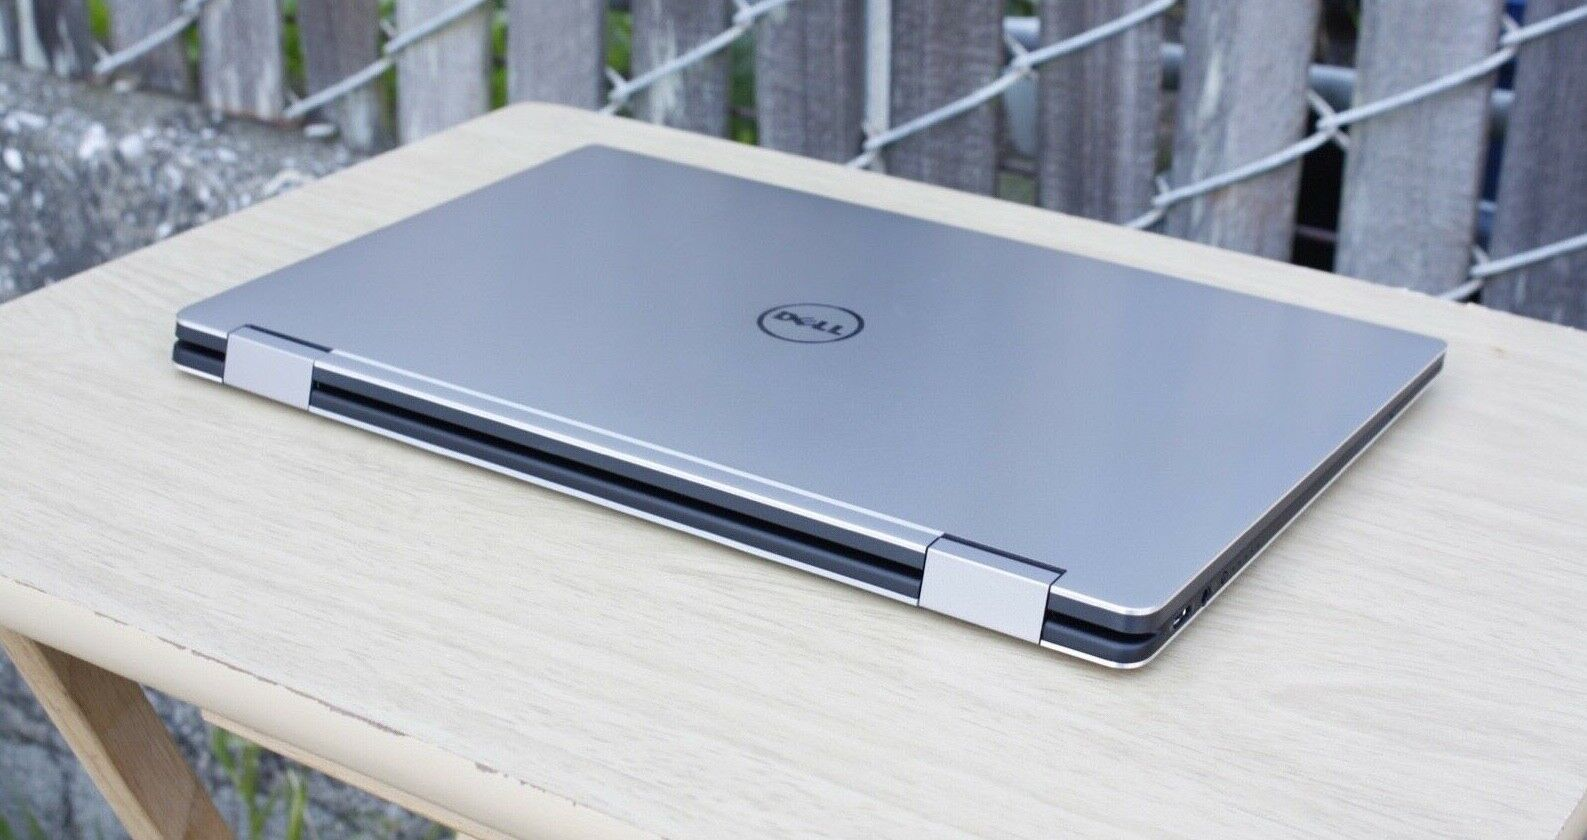 Dell XPS 13 9365 2-in-1 Tablet & Laptop - Core i7 4K 3200x1800 Touch 512GB 8GB 10